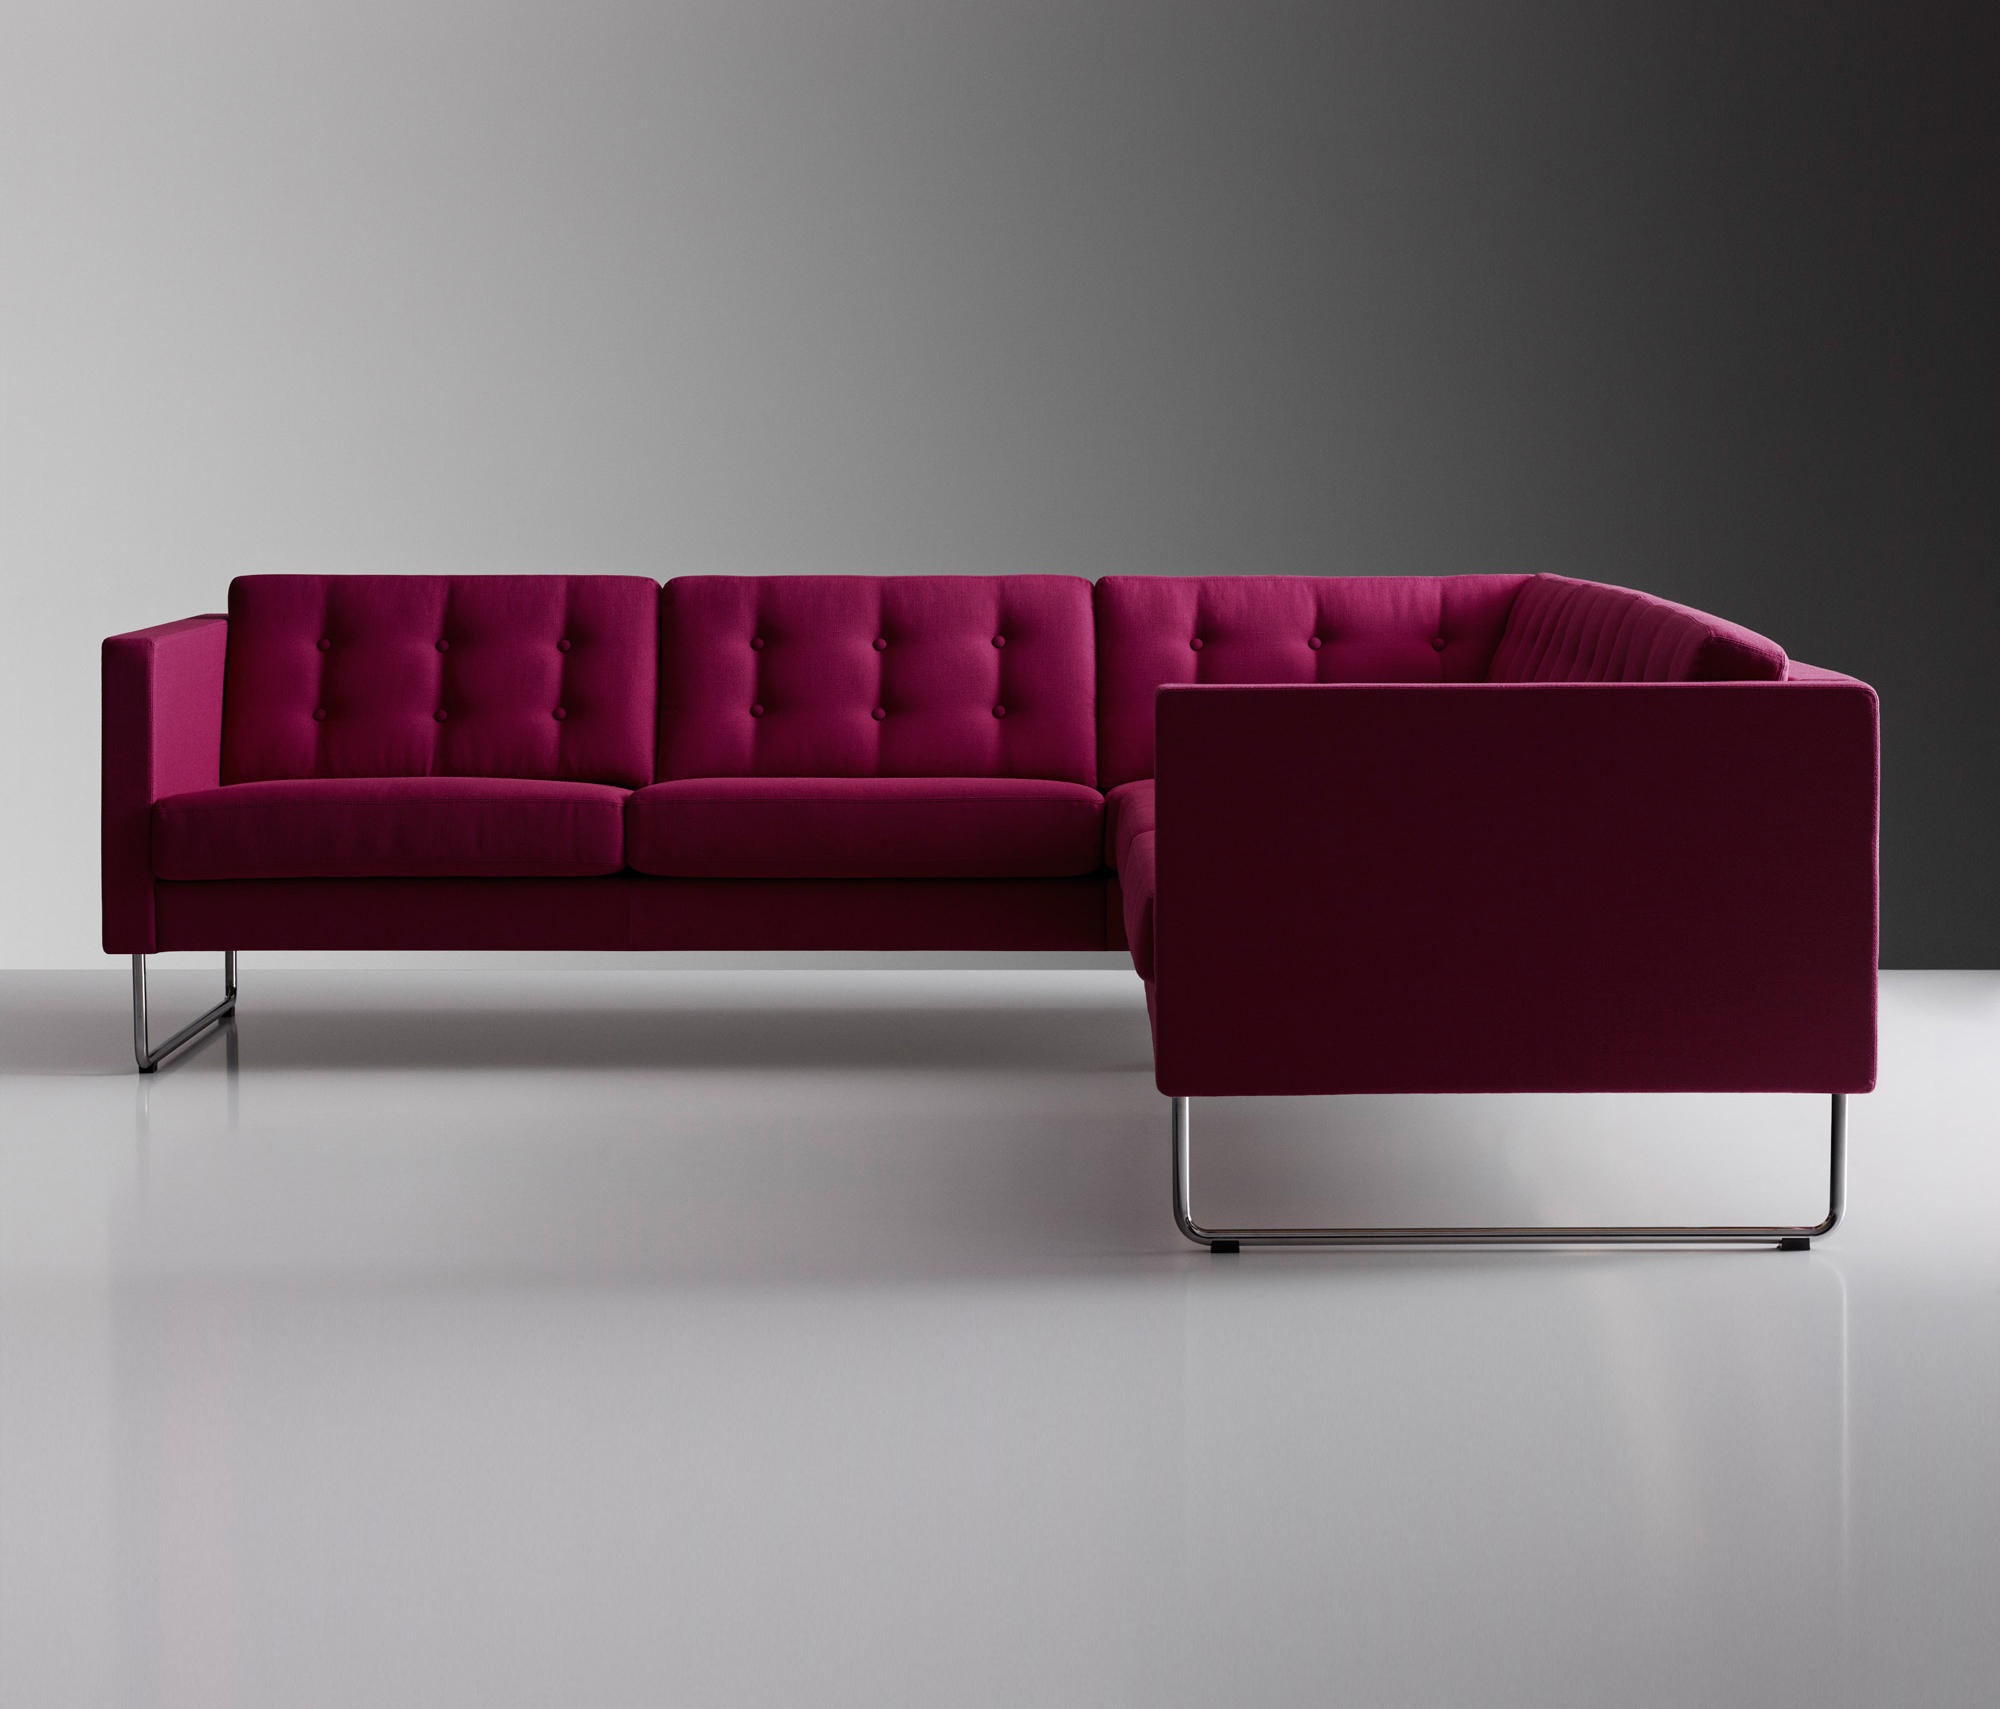 MADISON SOFA Modular seating systems from Swedese Architonic